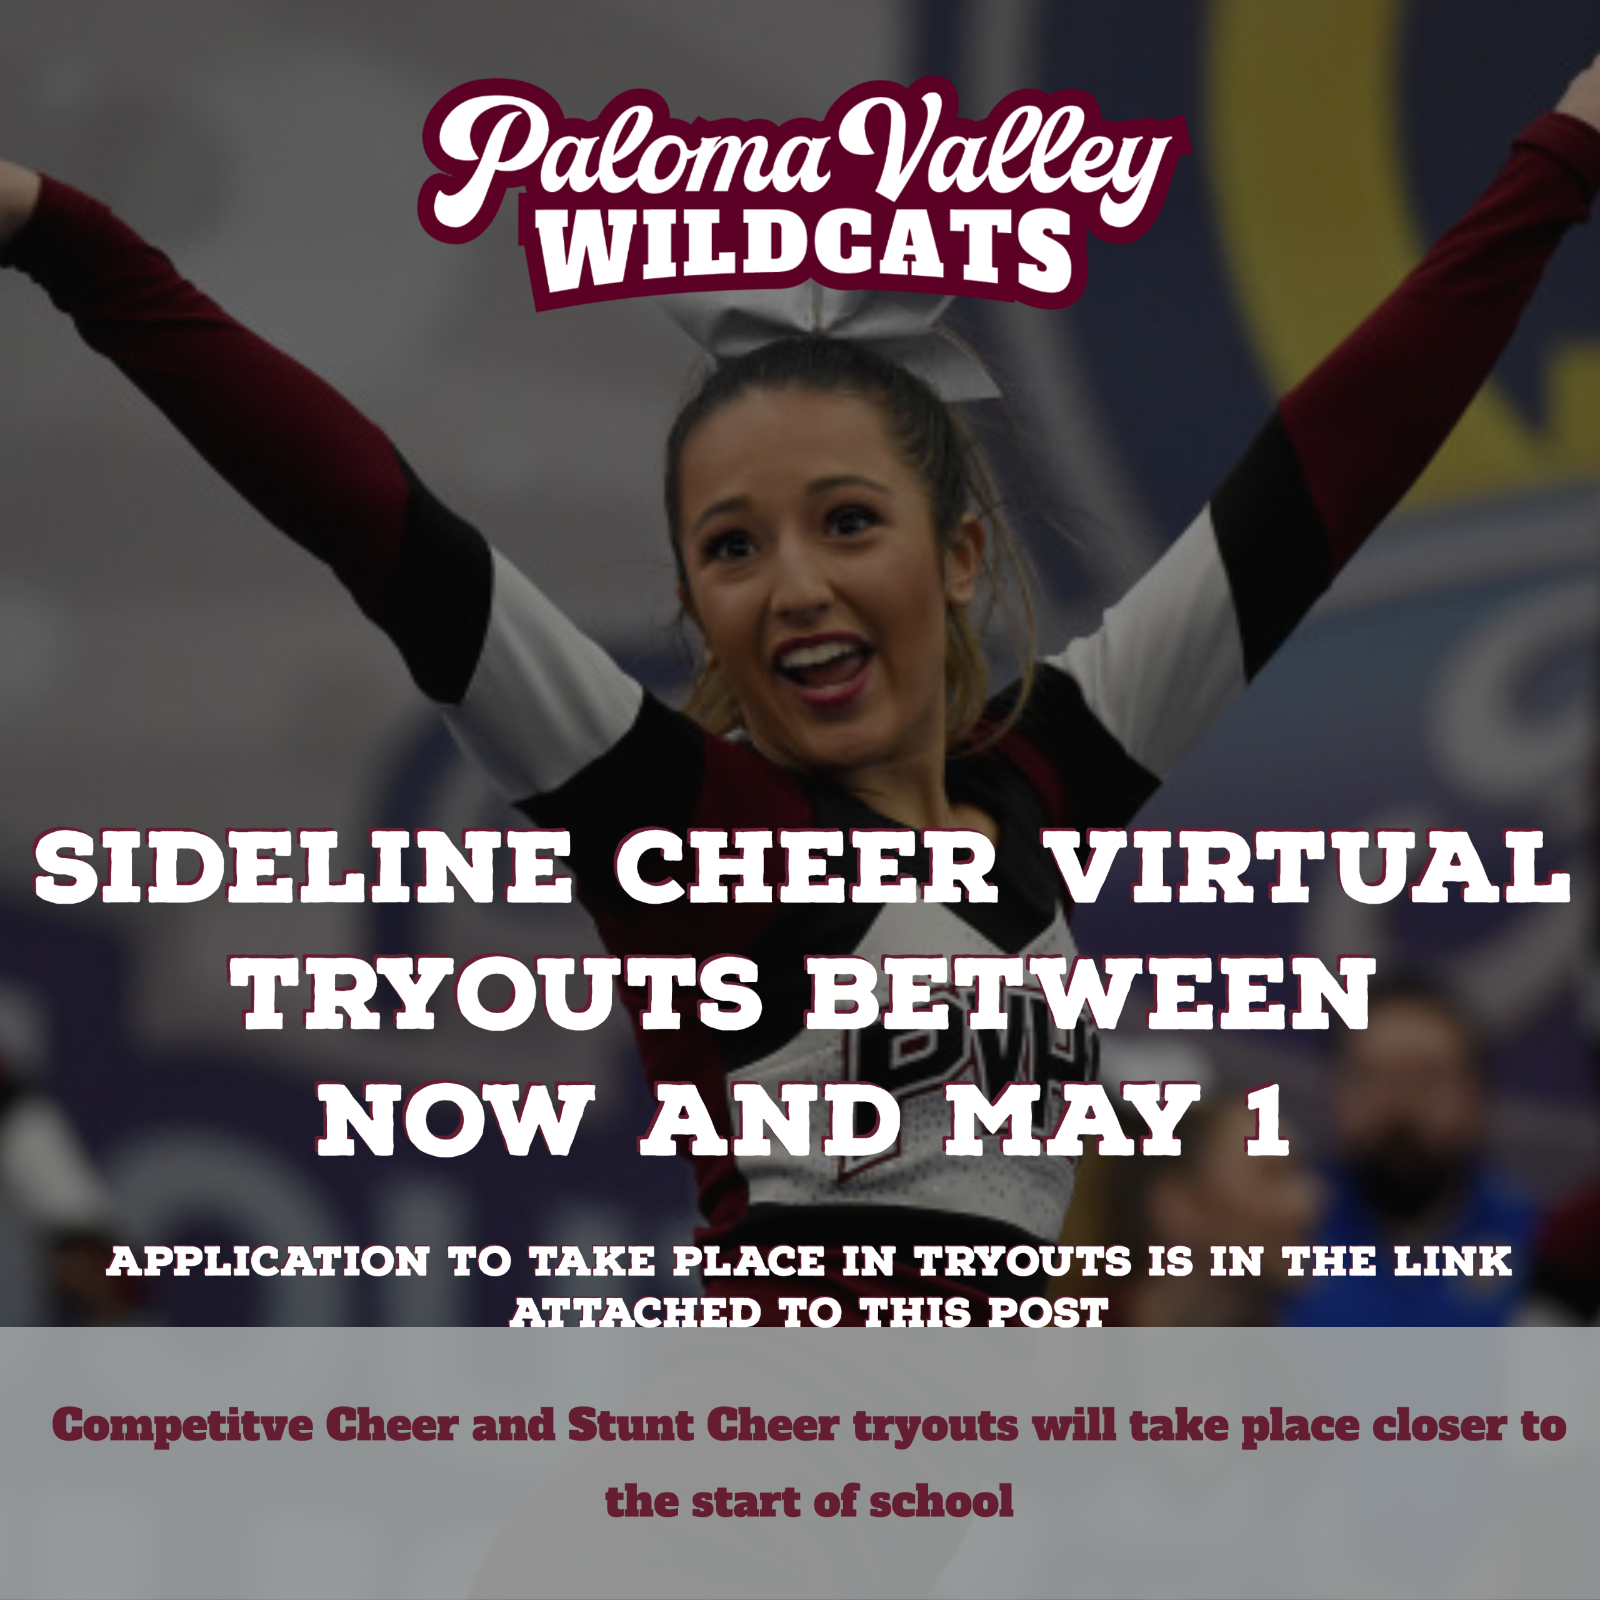 Virtual Sideline Cheer Tryouts